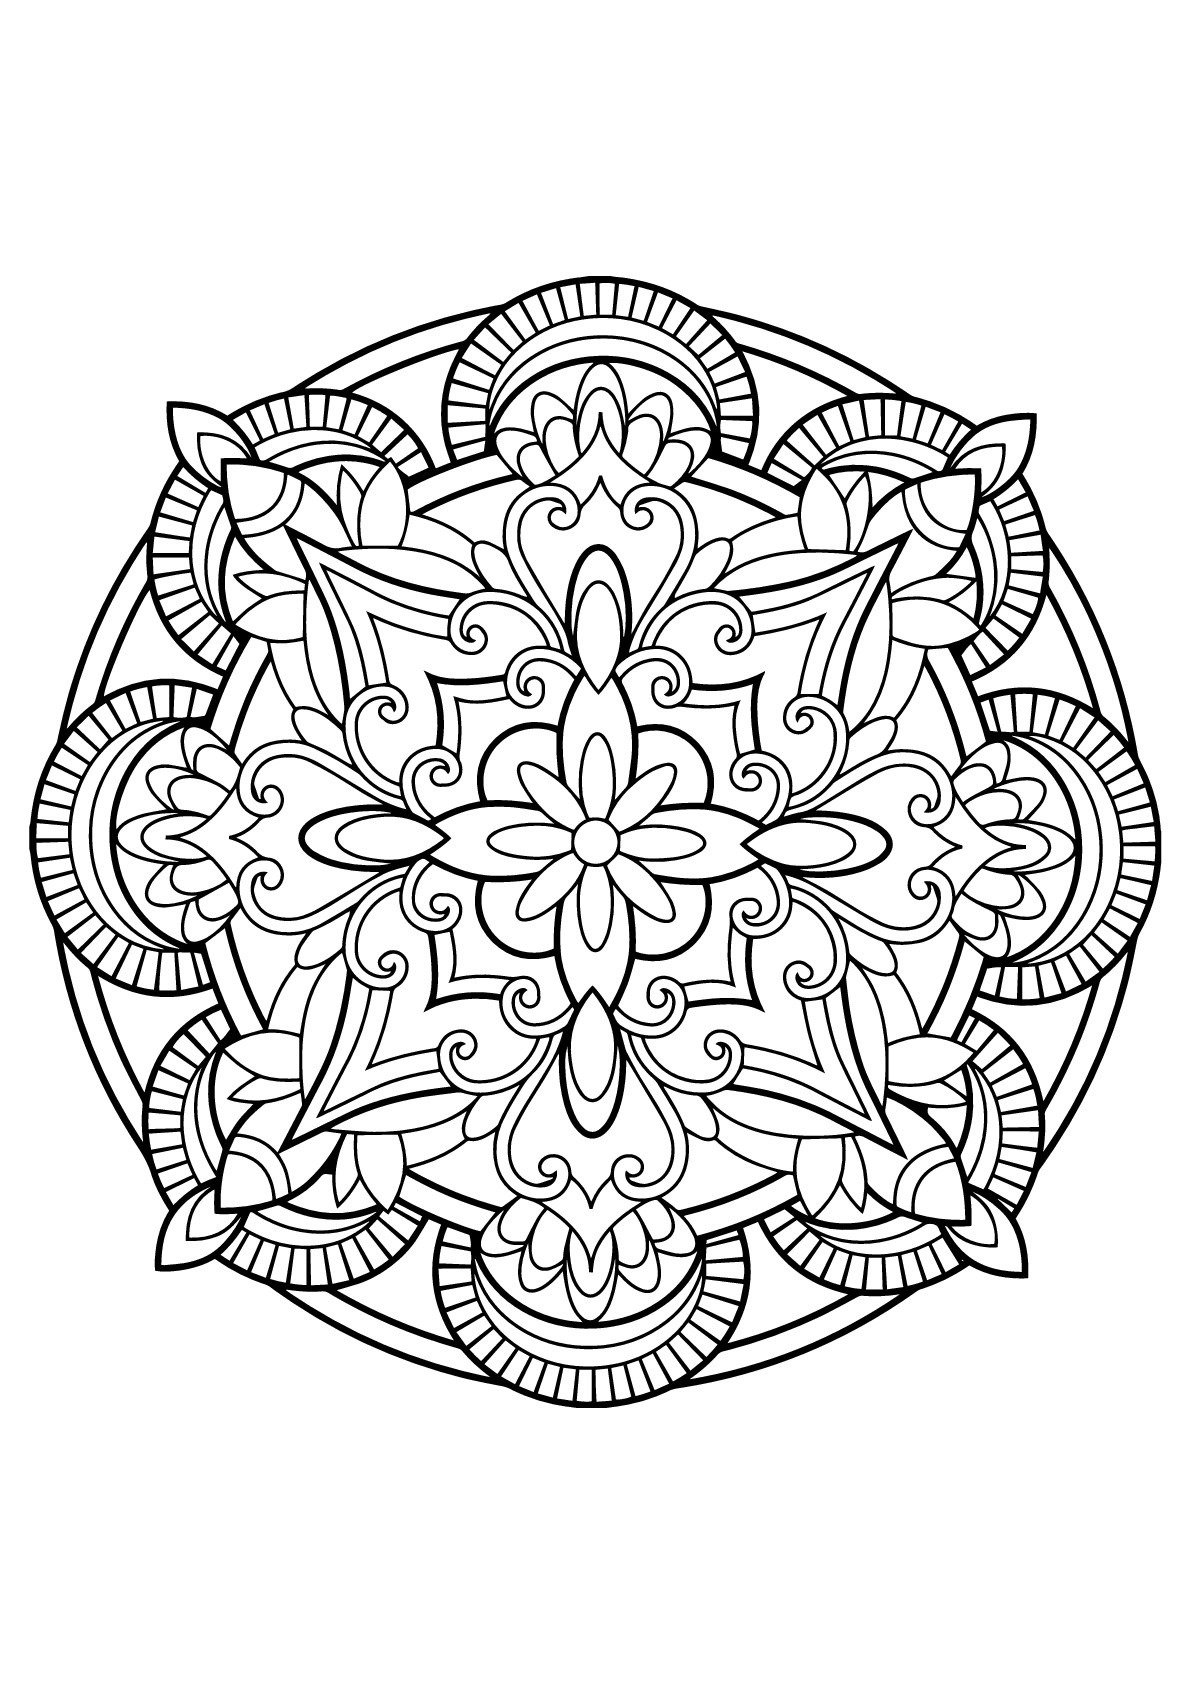 Mandala from free coloring books for adults 23 - Mandalas ... | free online mandala coloring pages for adults